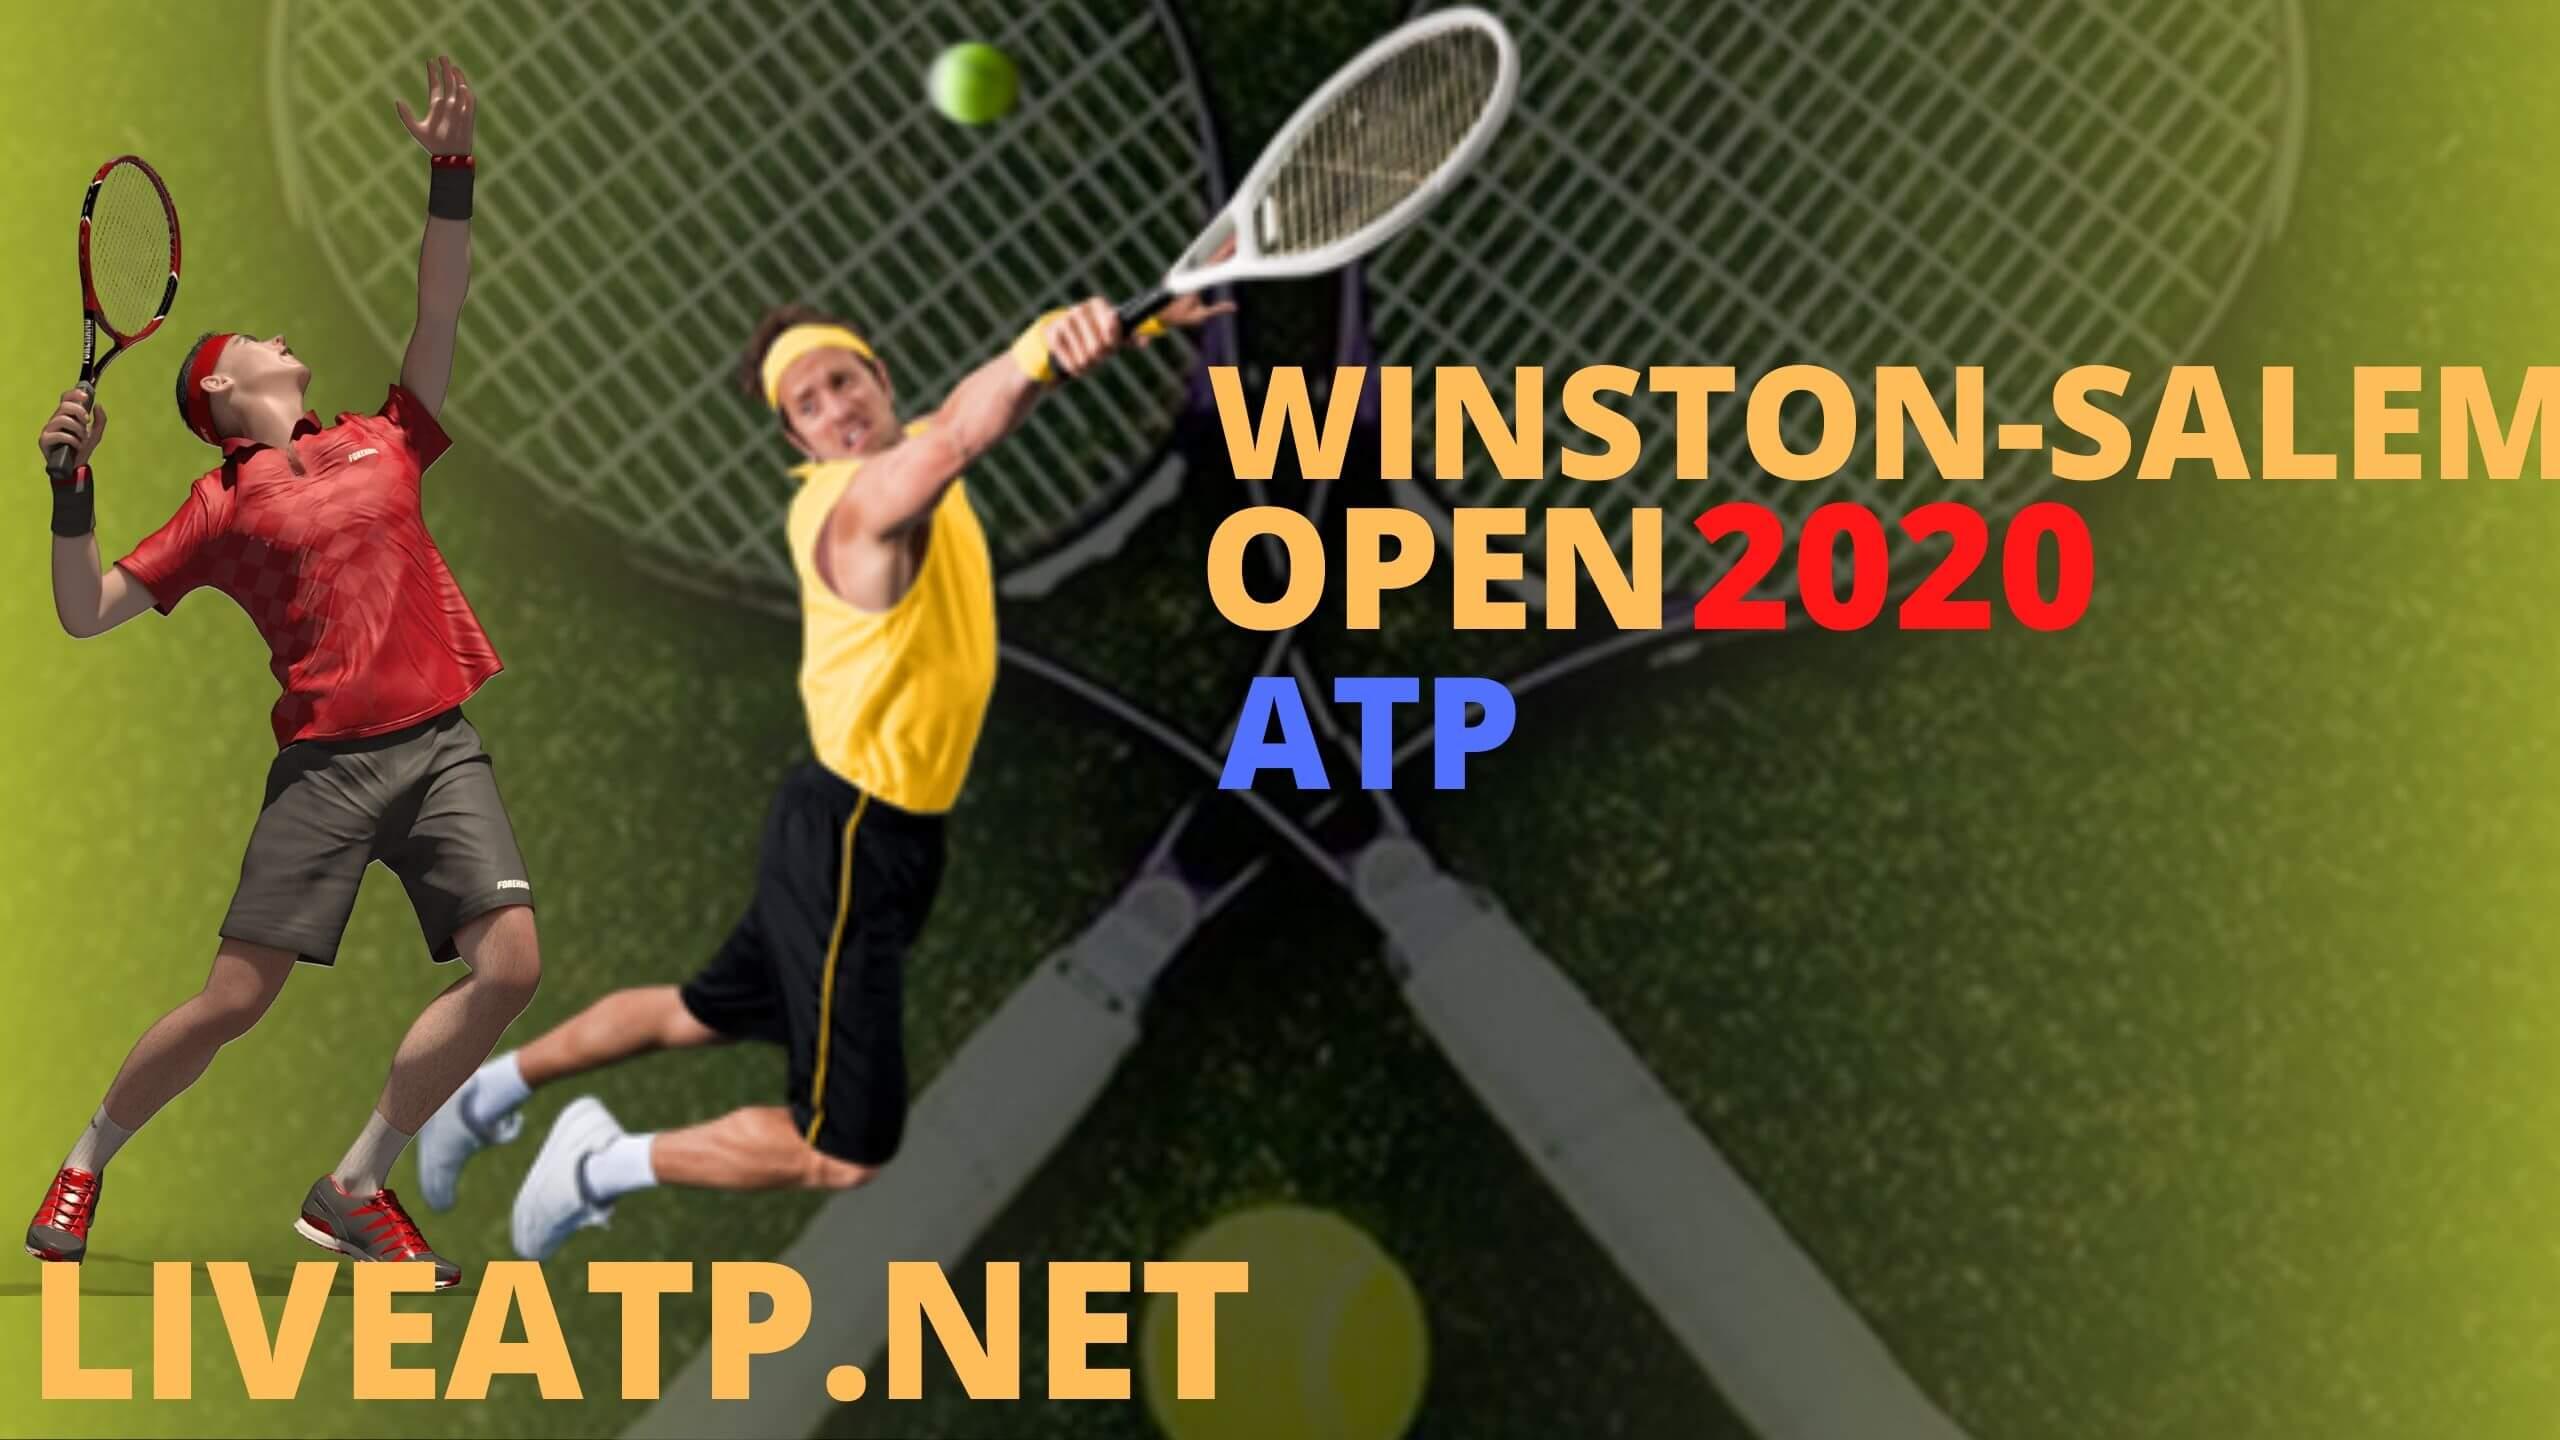 Winston Salem Open Live Stream 2020 | Day 1